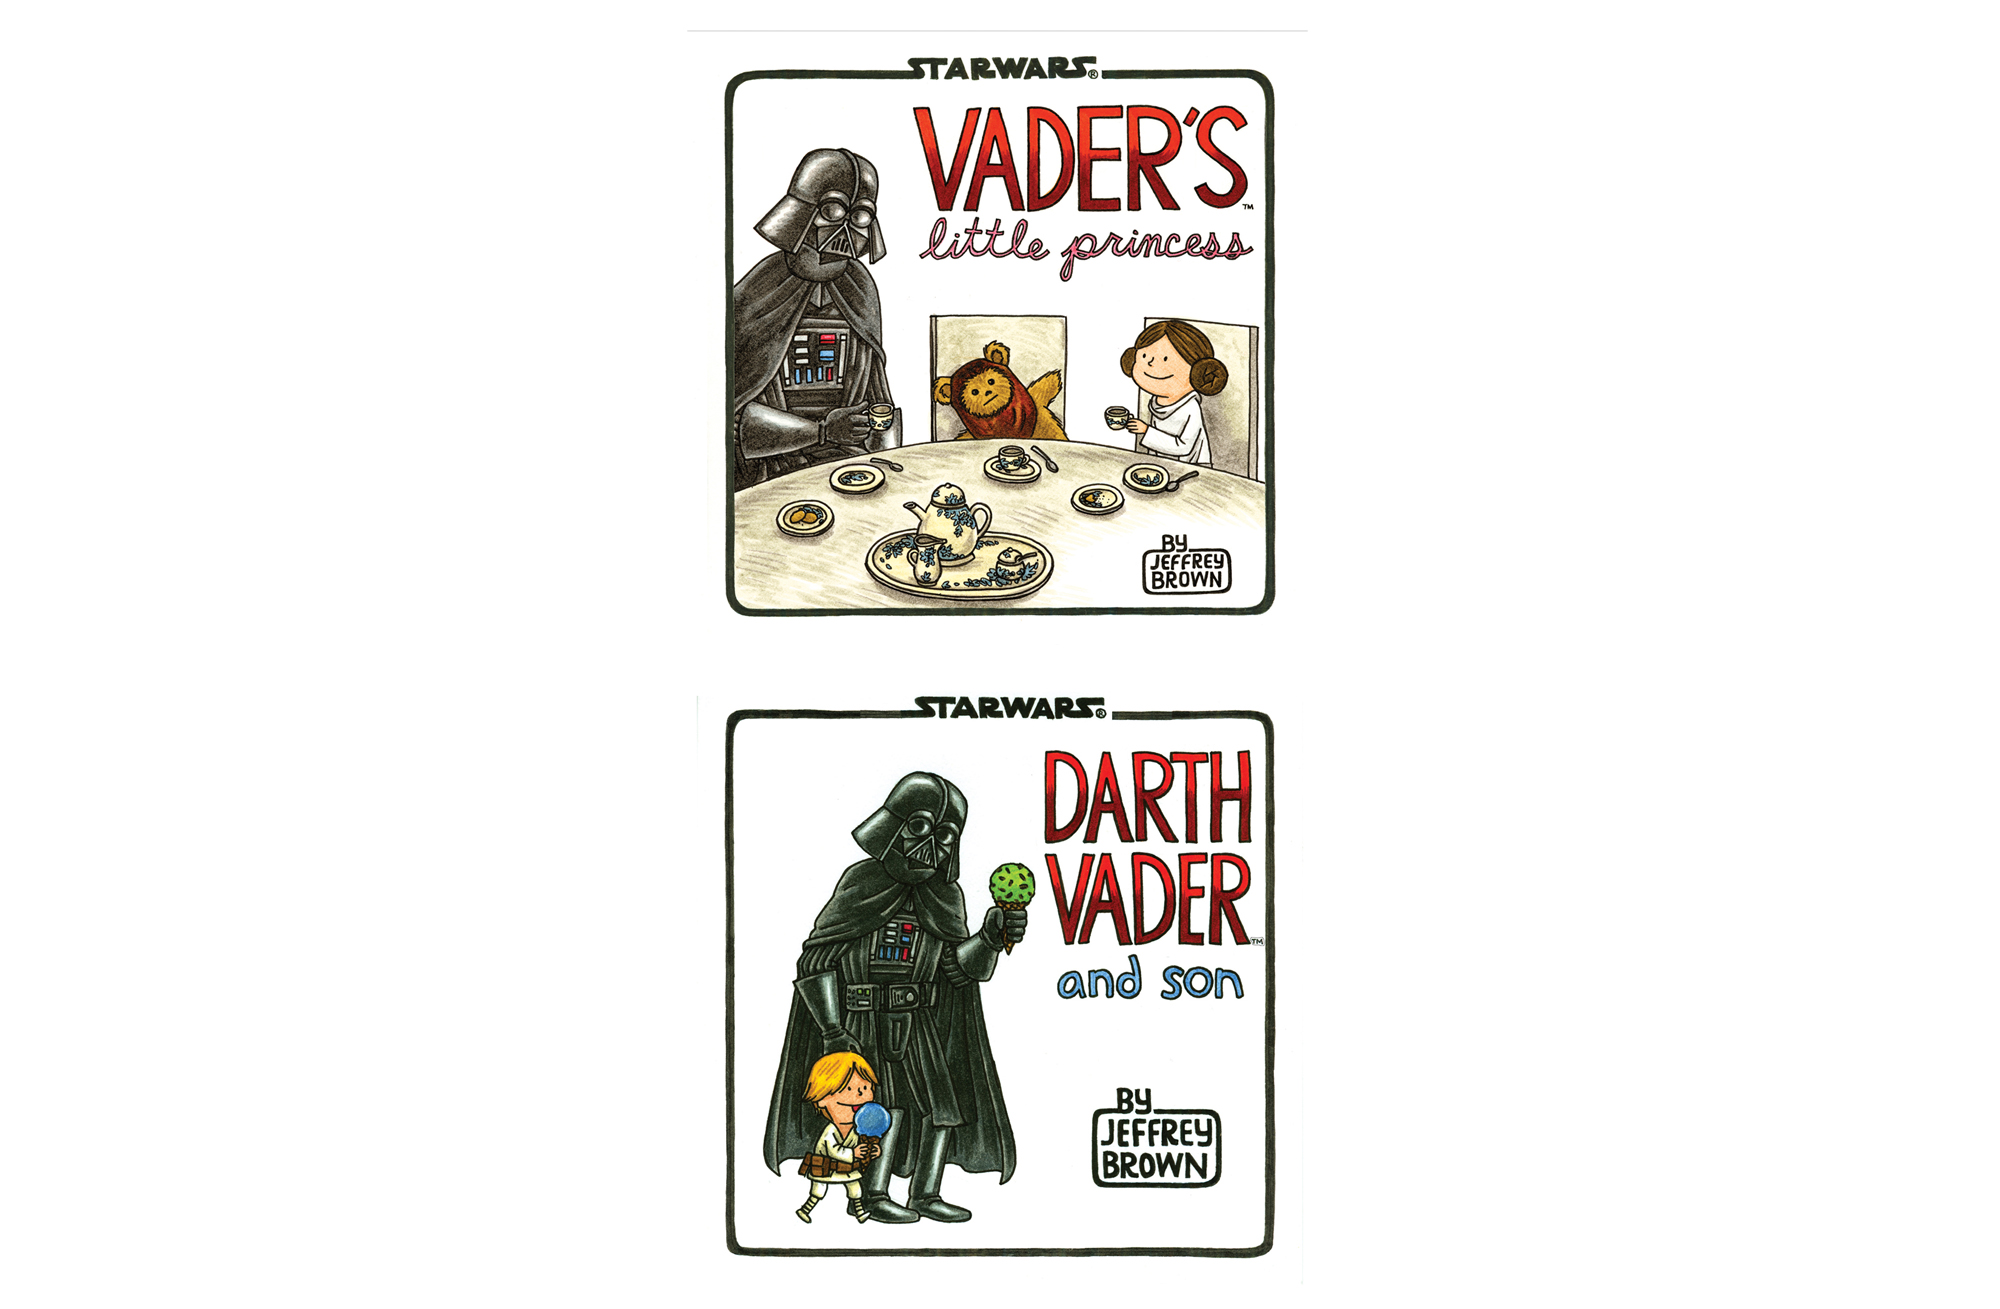 Vader's Little Princess and Darth Vader and Son